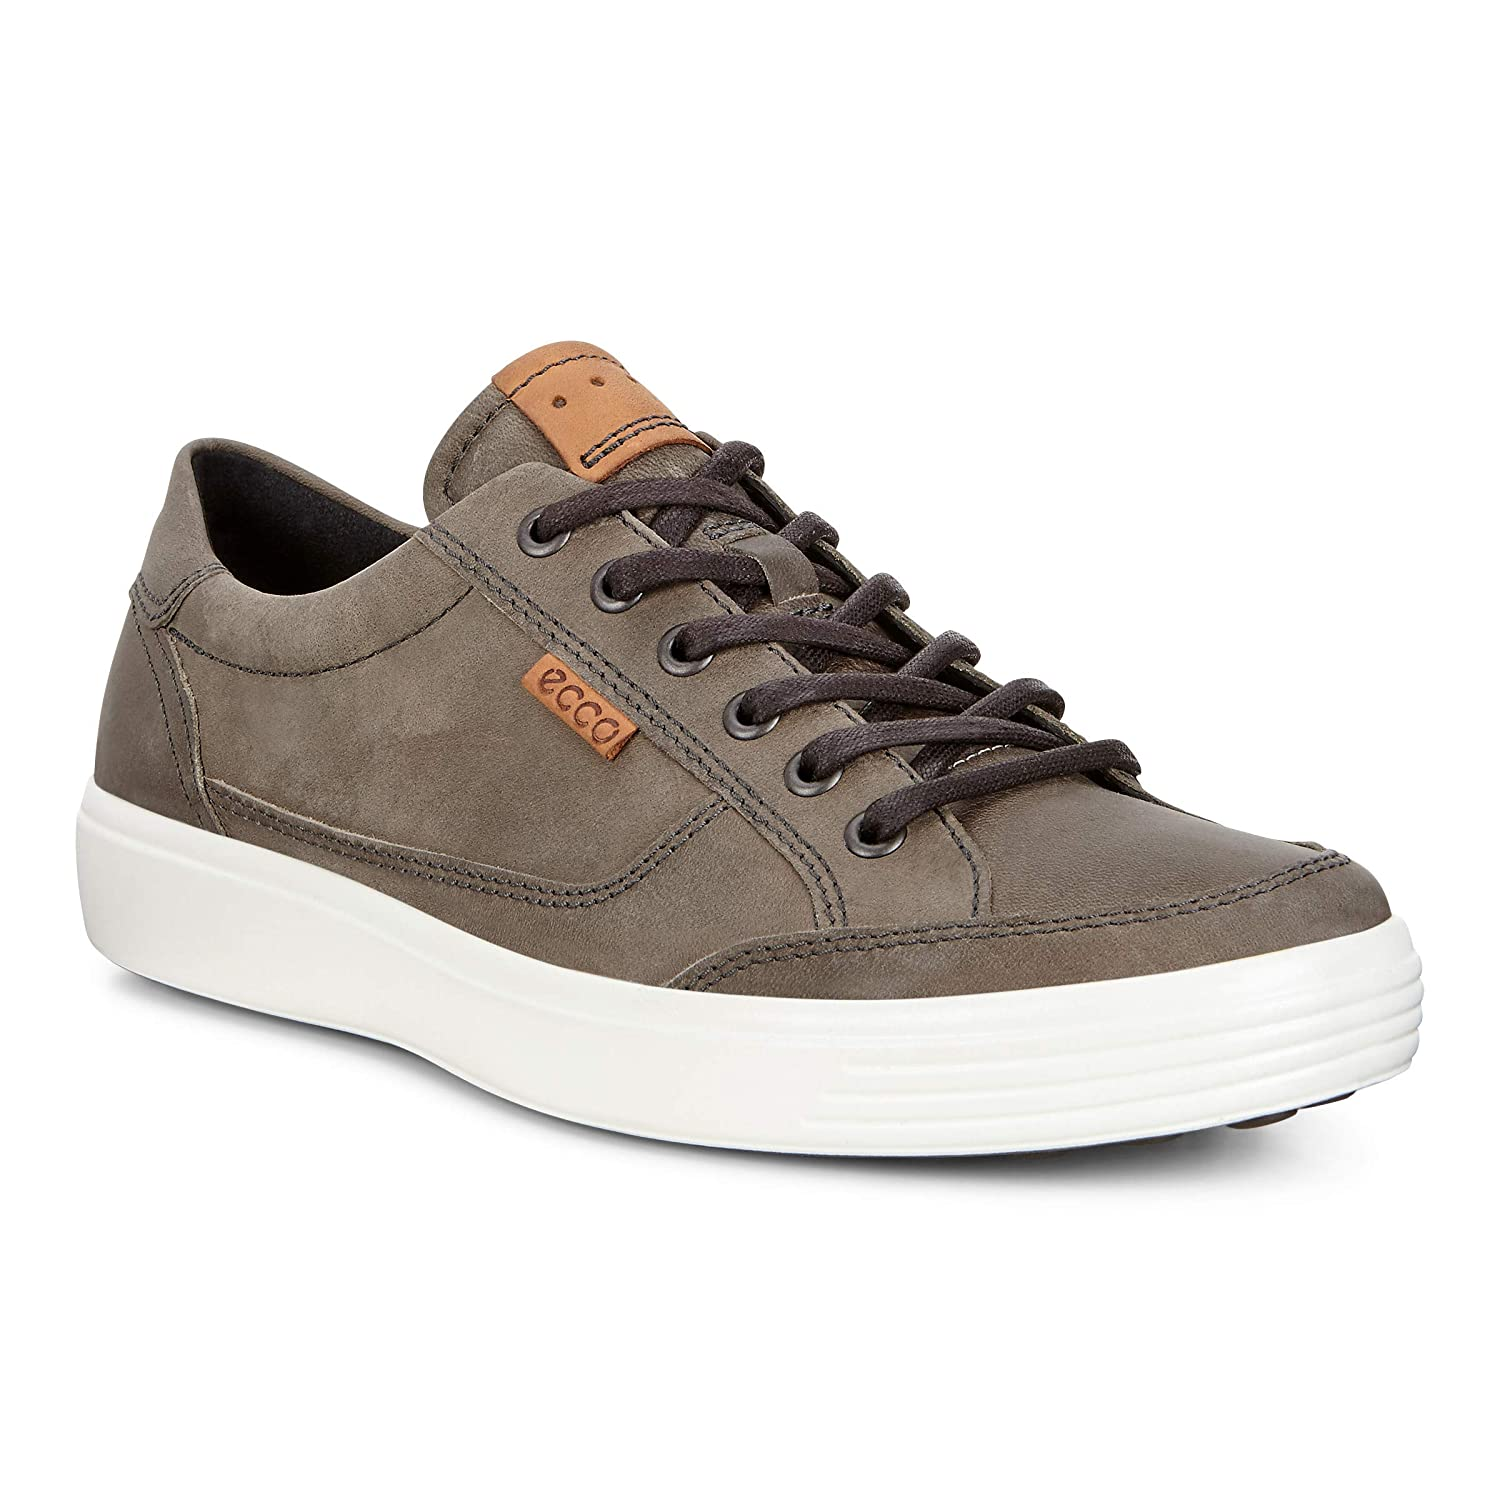 ECCO Mens Soft 7 Lace Low Fashion Sneakers